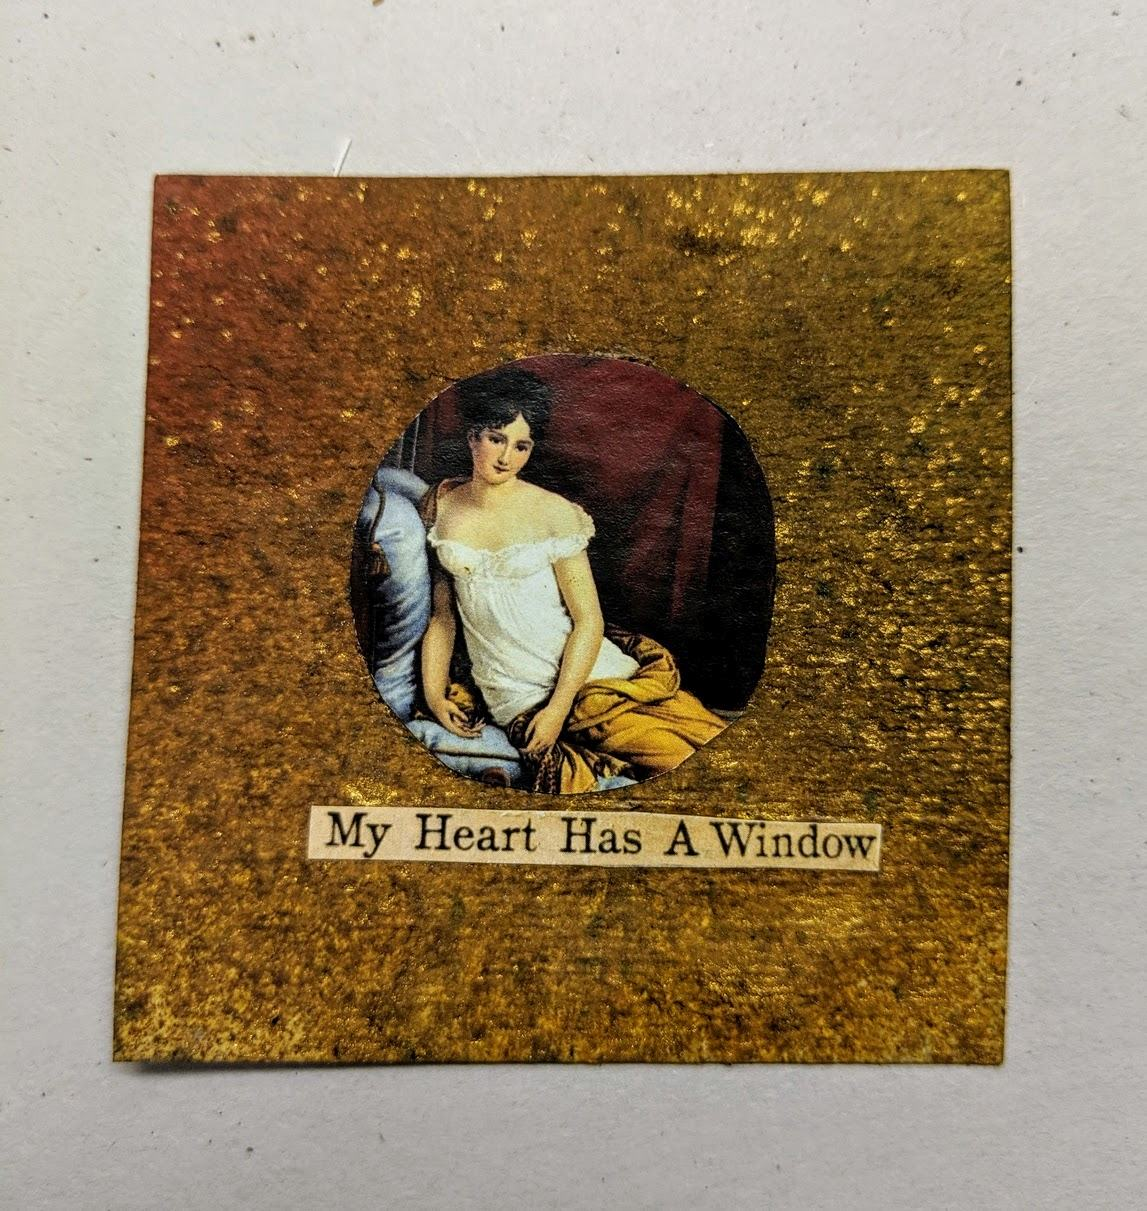 228: 3x3 card with dyes & collage